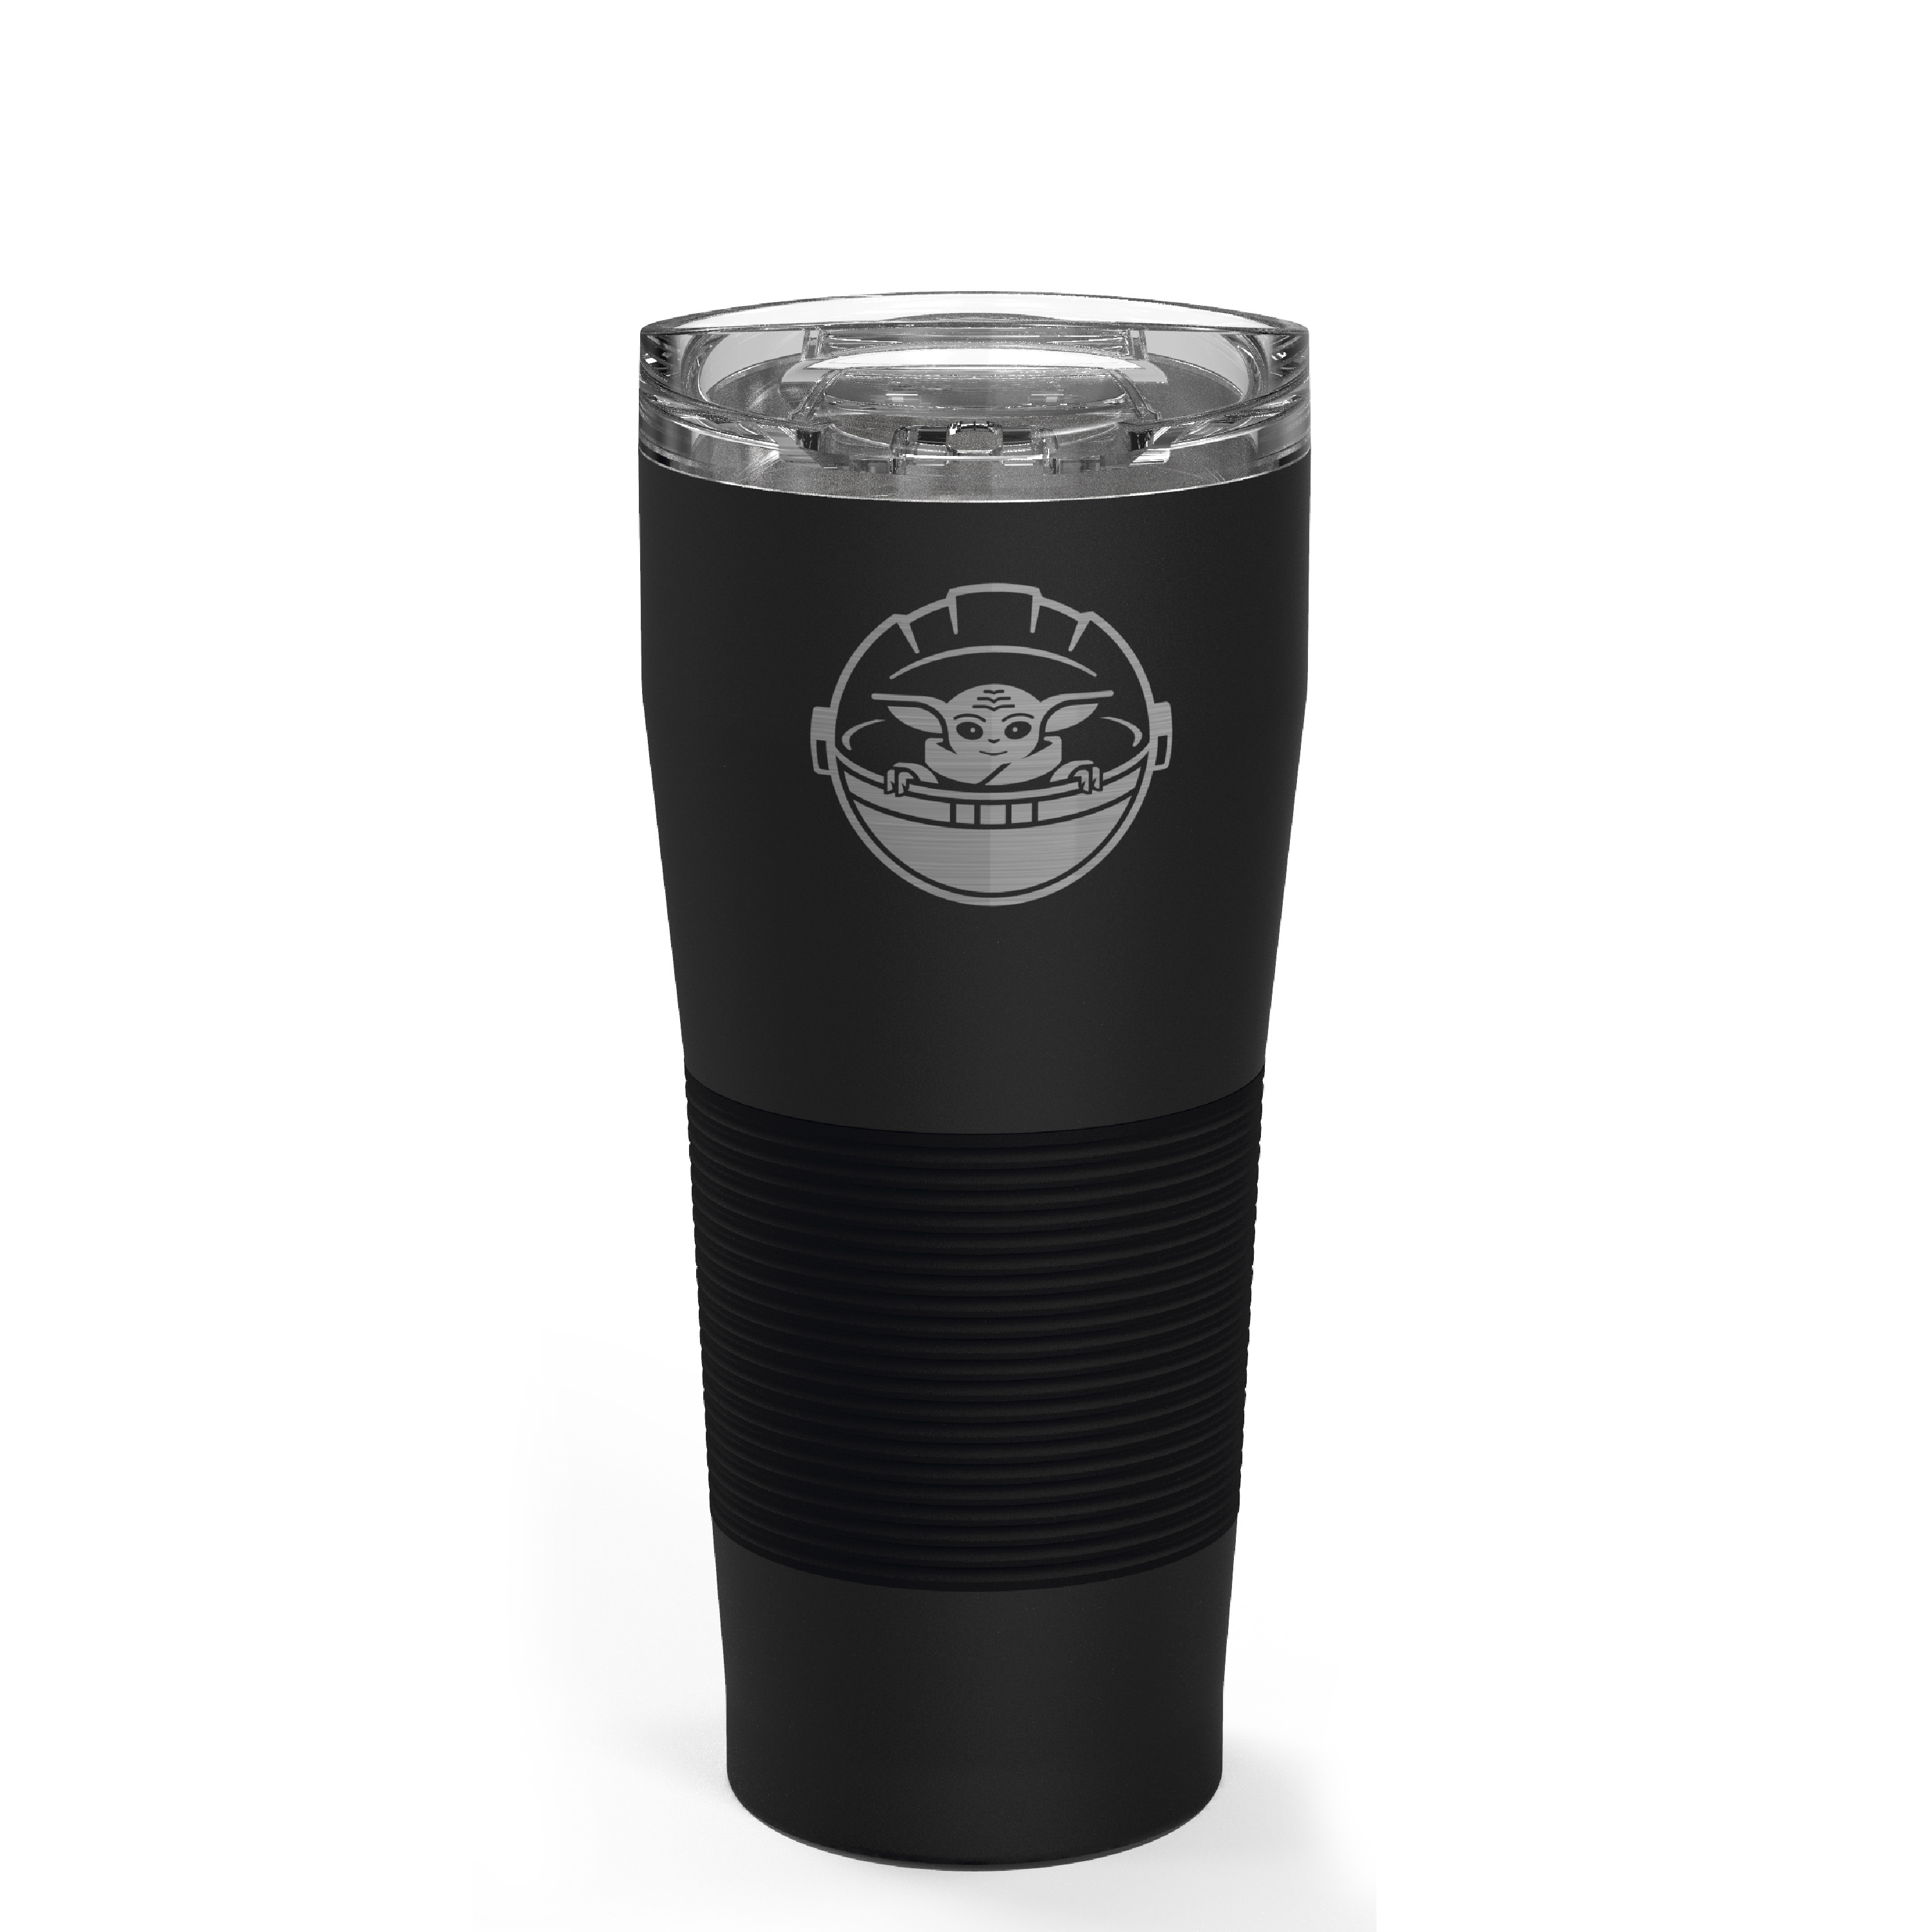 Star Wars: The Mandalorian 28 ounce Vacuum Insulated Stainless Steel Tumbler, The Child slideshow image 1